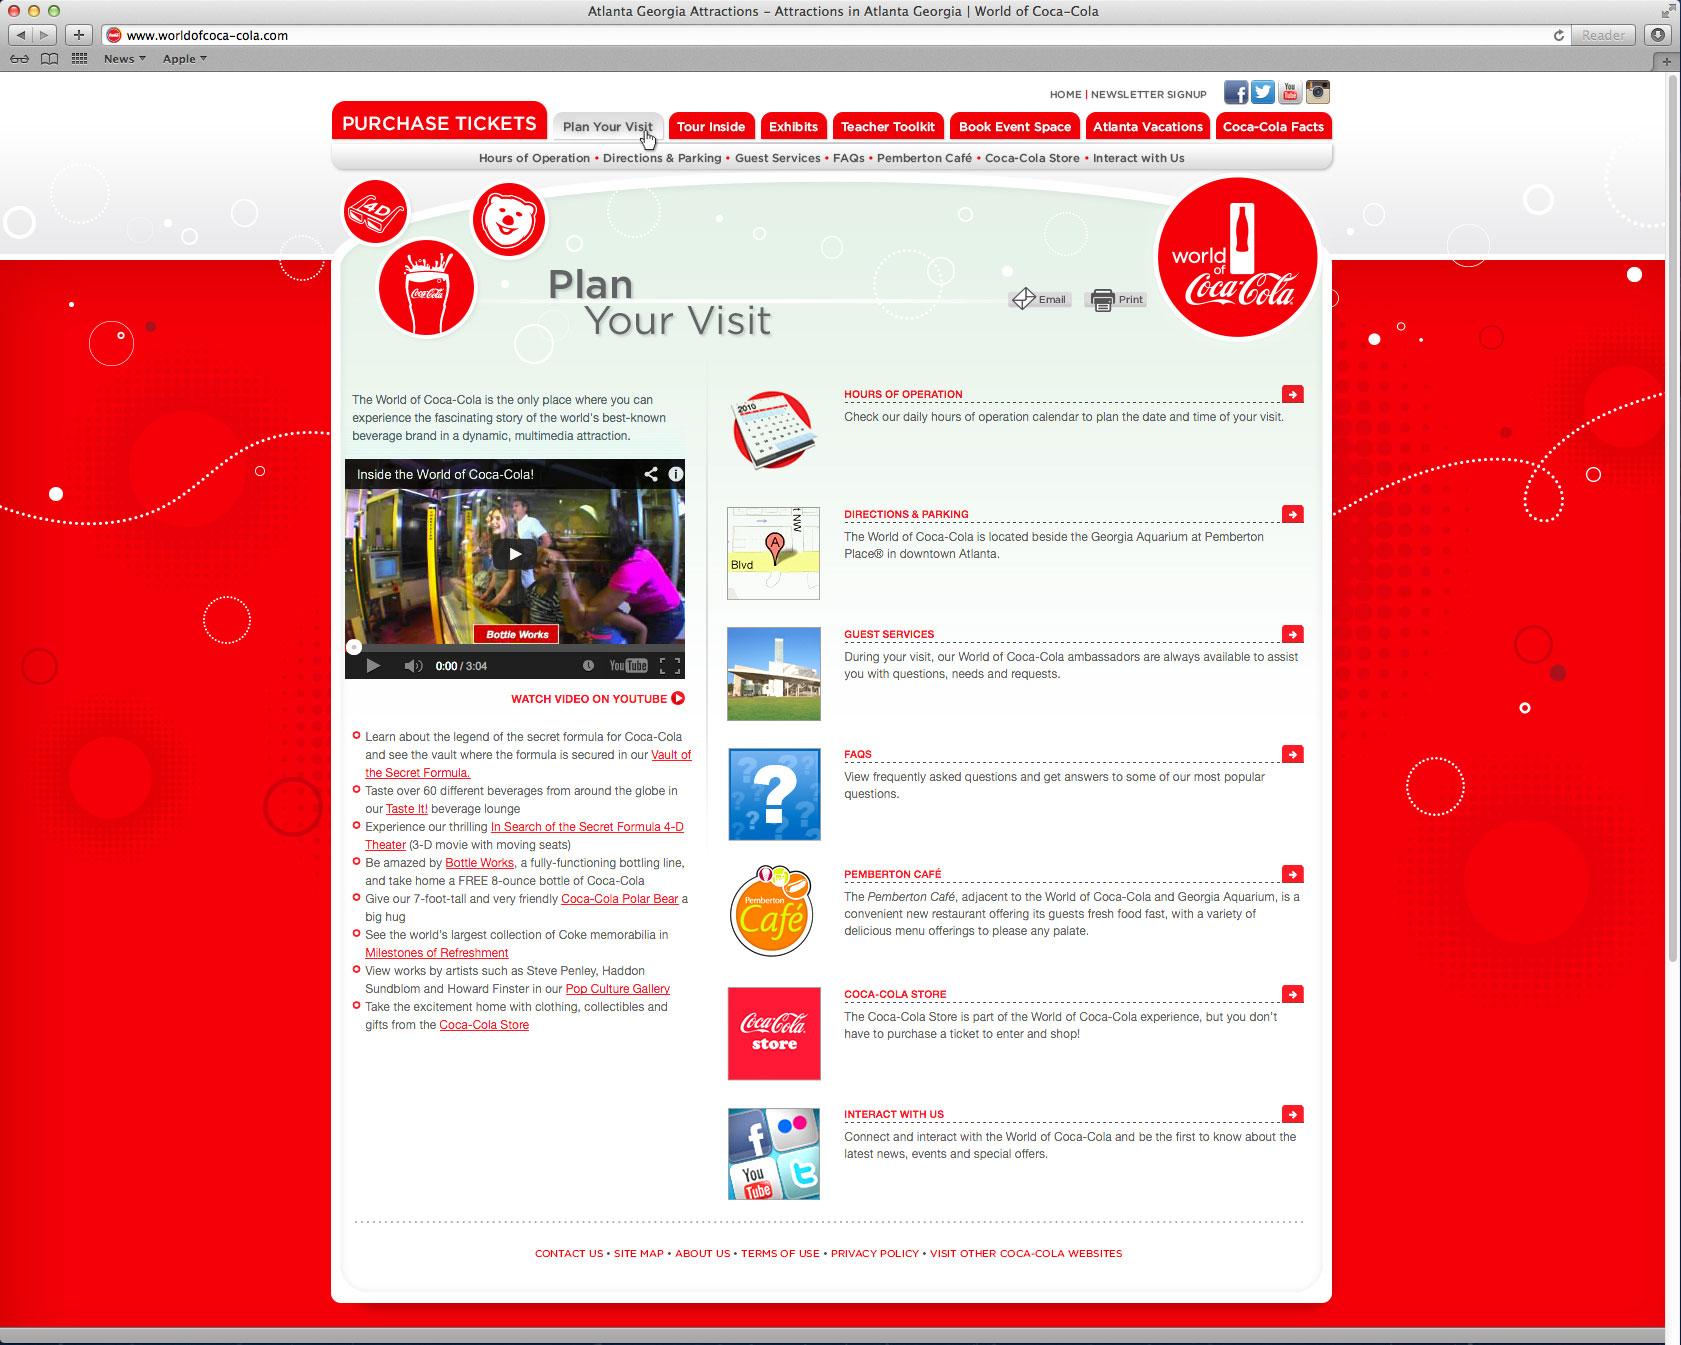 World of Coca-Cola Website - Plan Your Visit